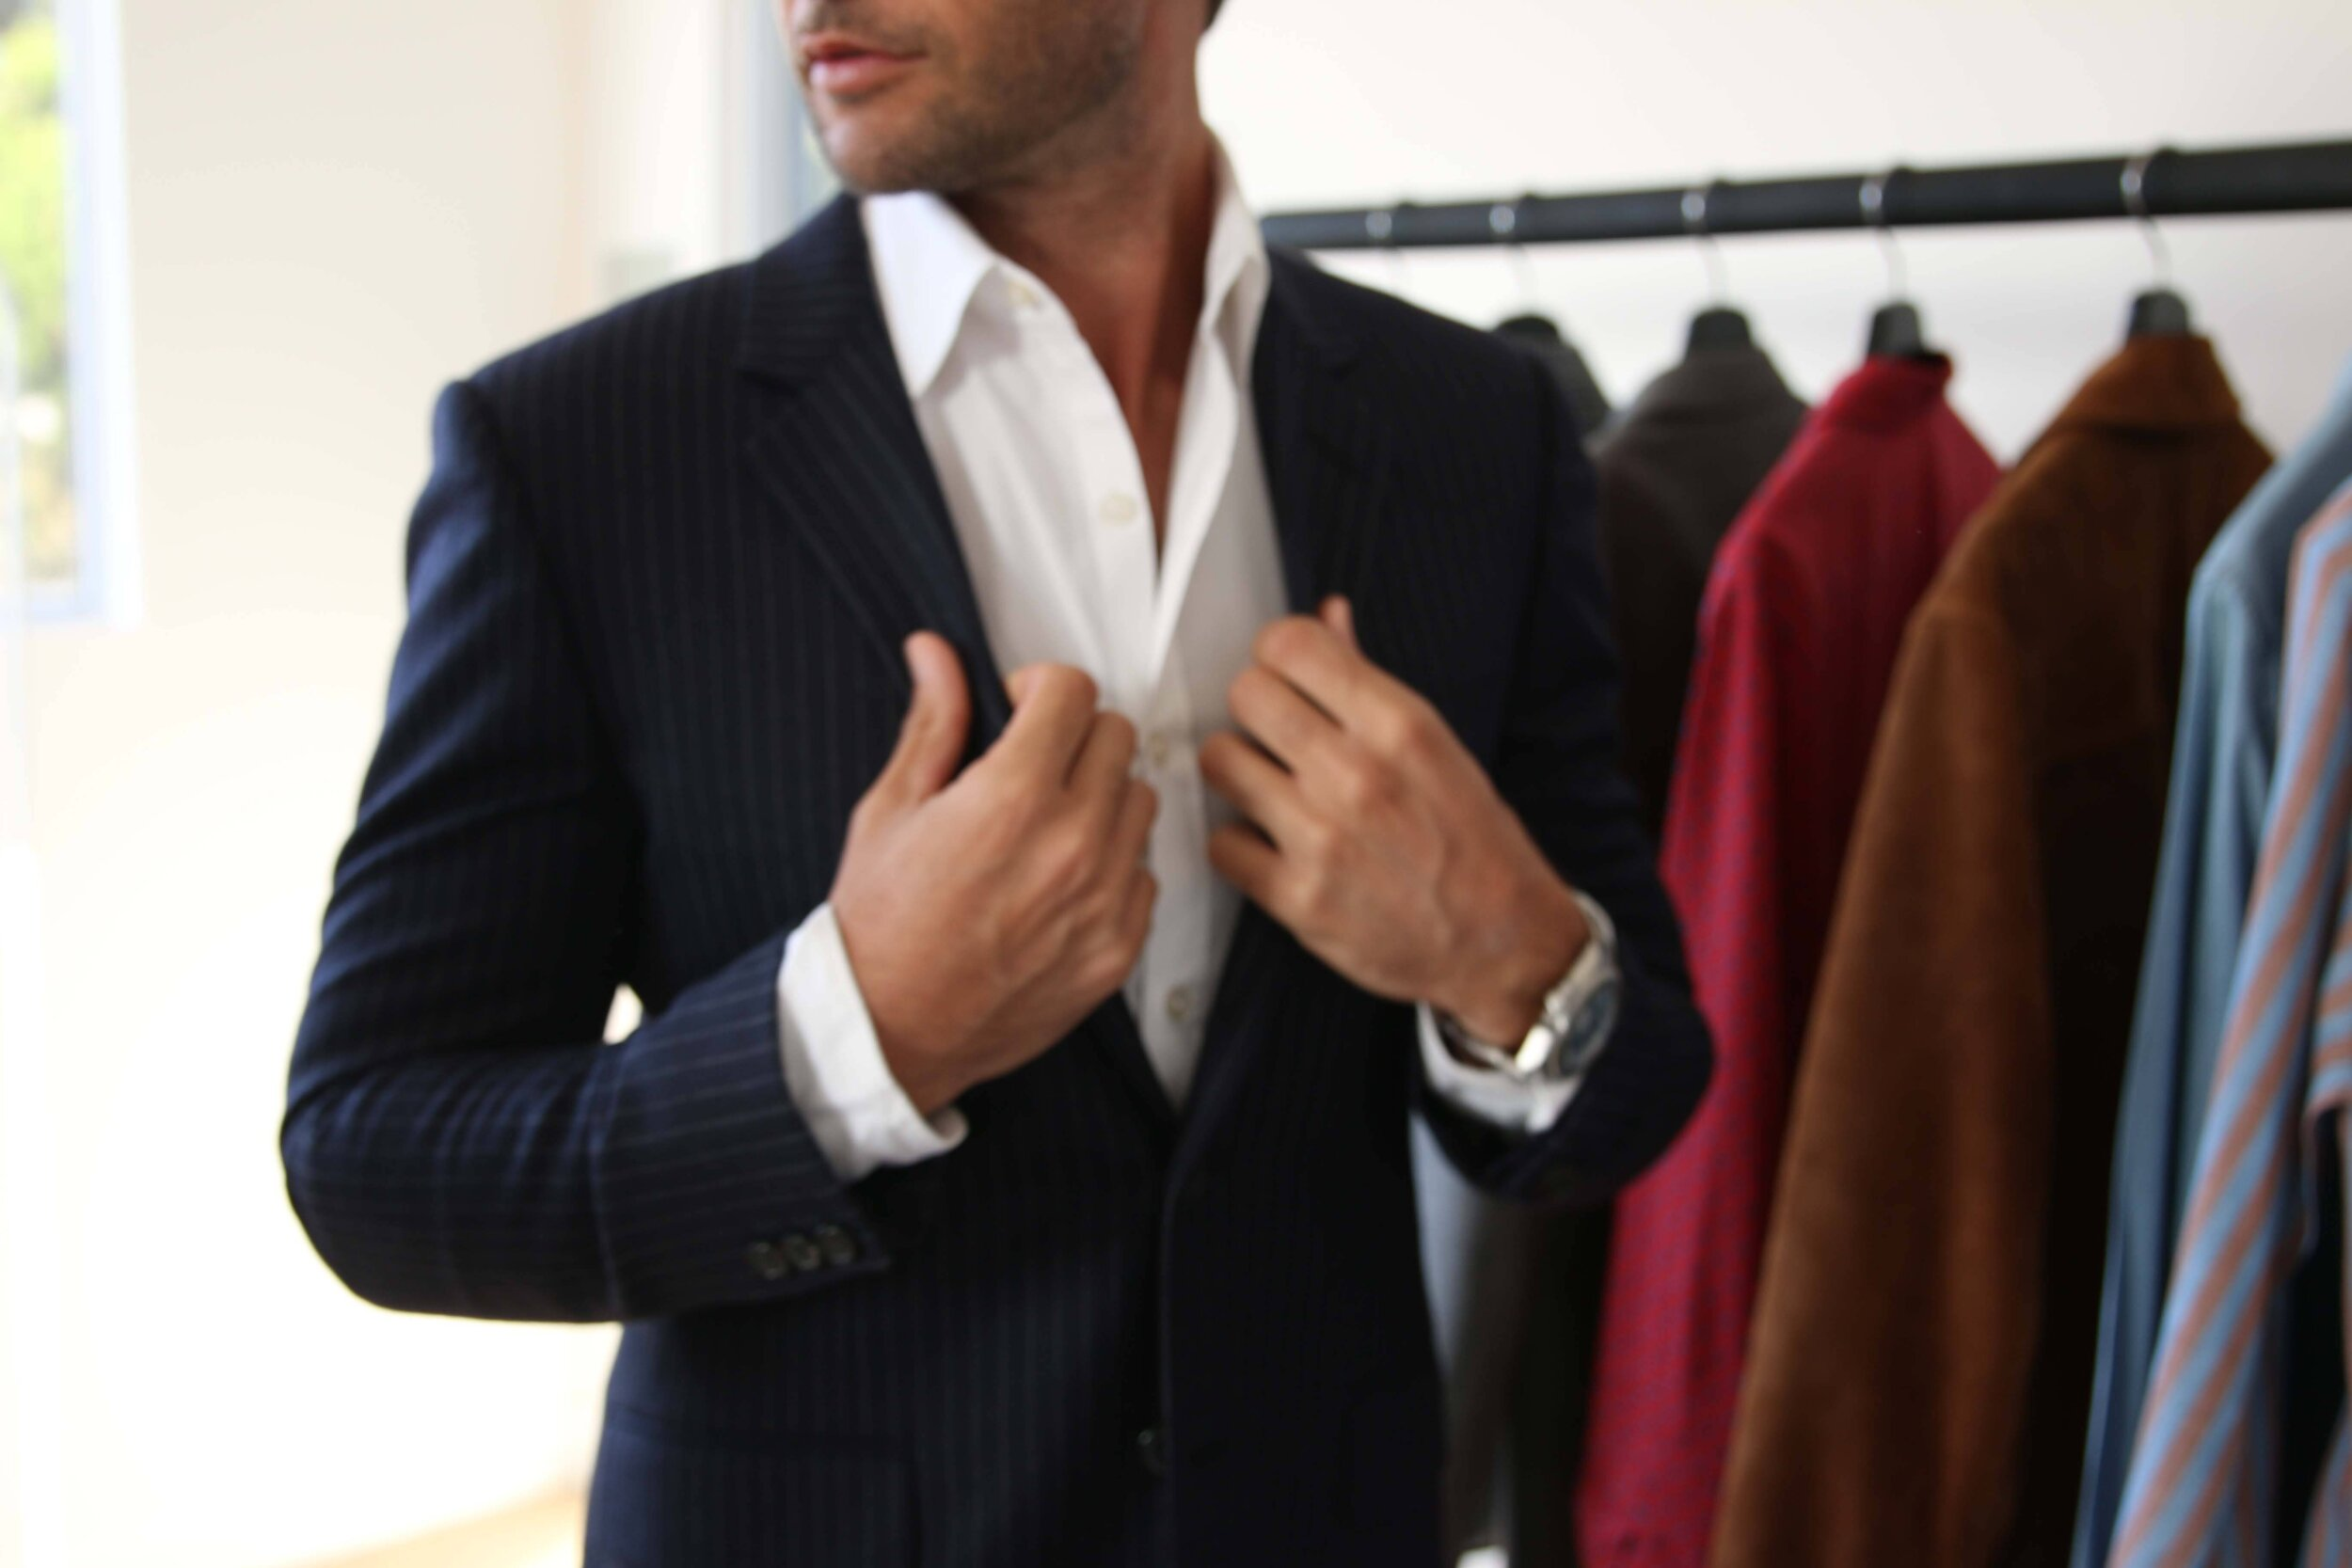 Men's Fashion and Julie Feingold